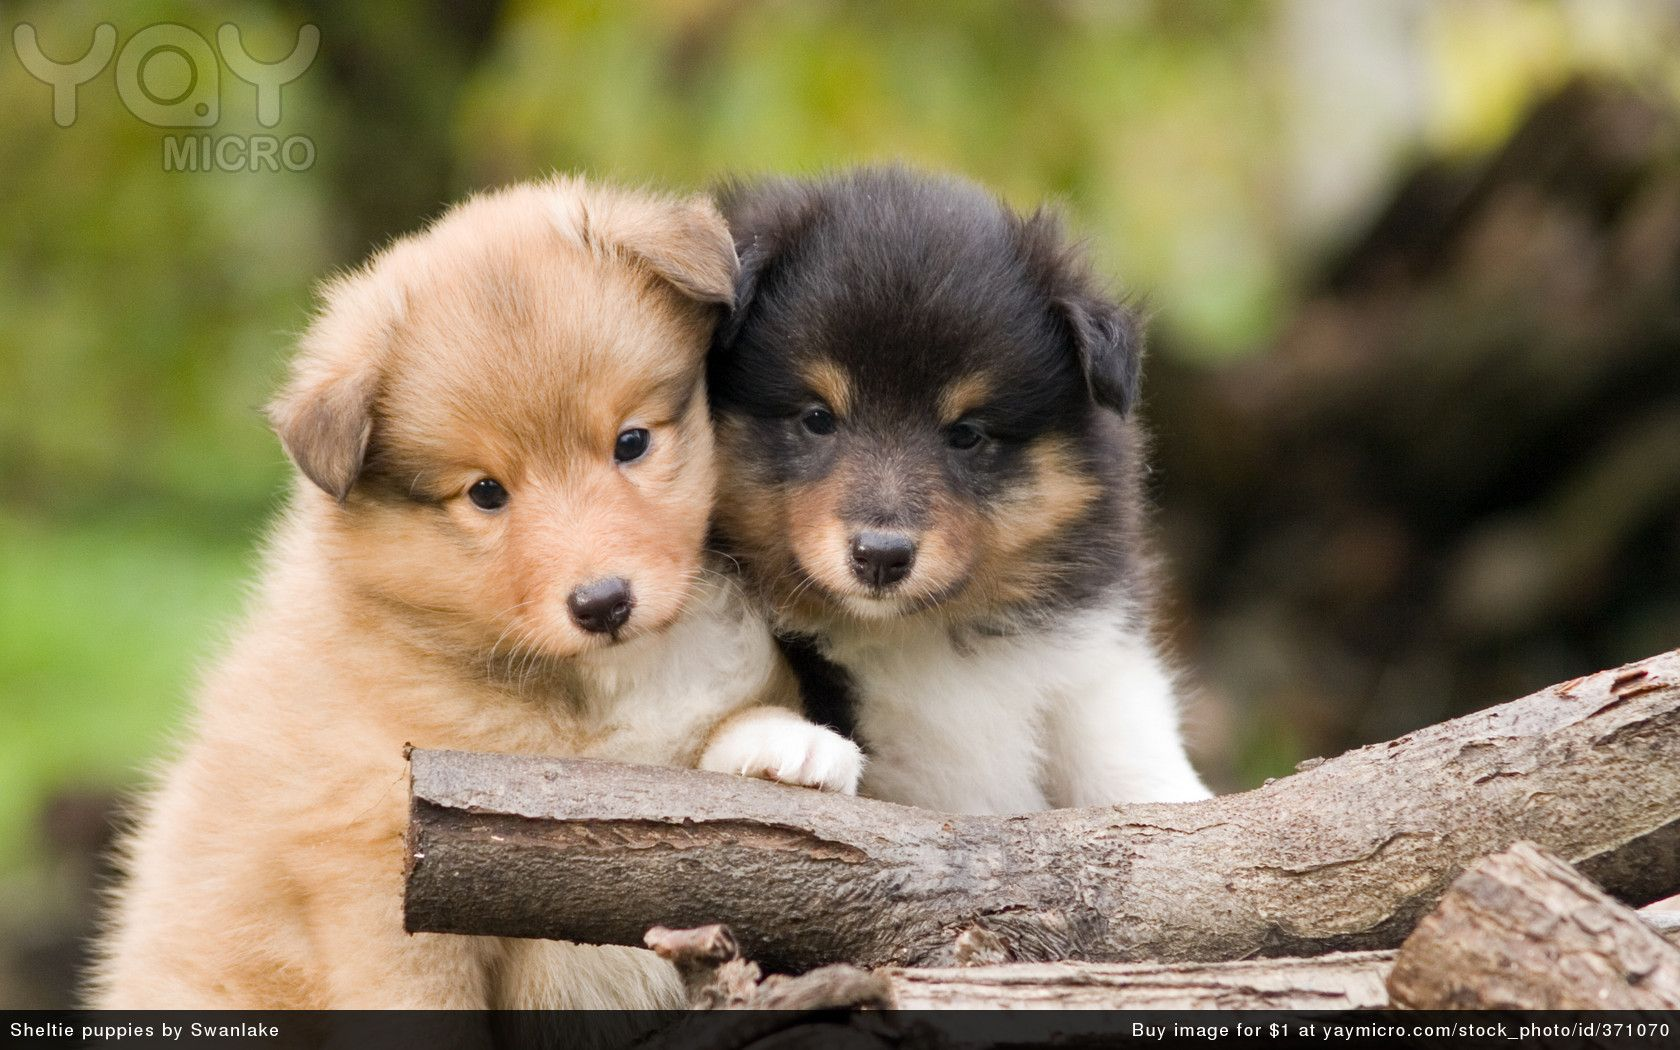 Cute Puppies Wallpapers For Computer Posted By Michelle Anderson